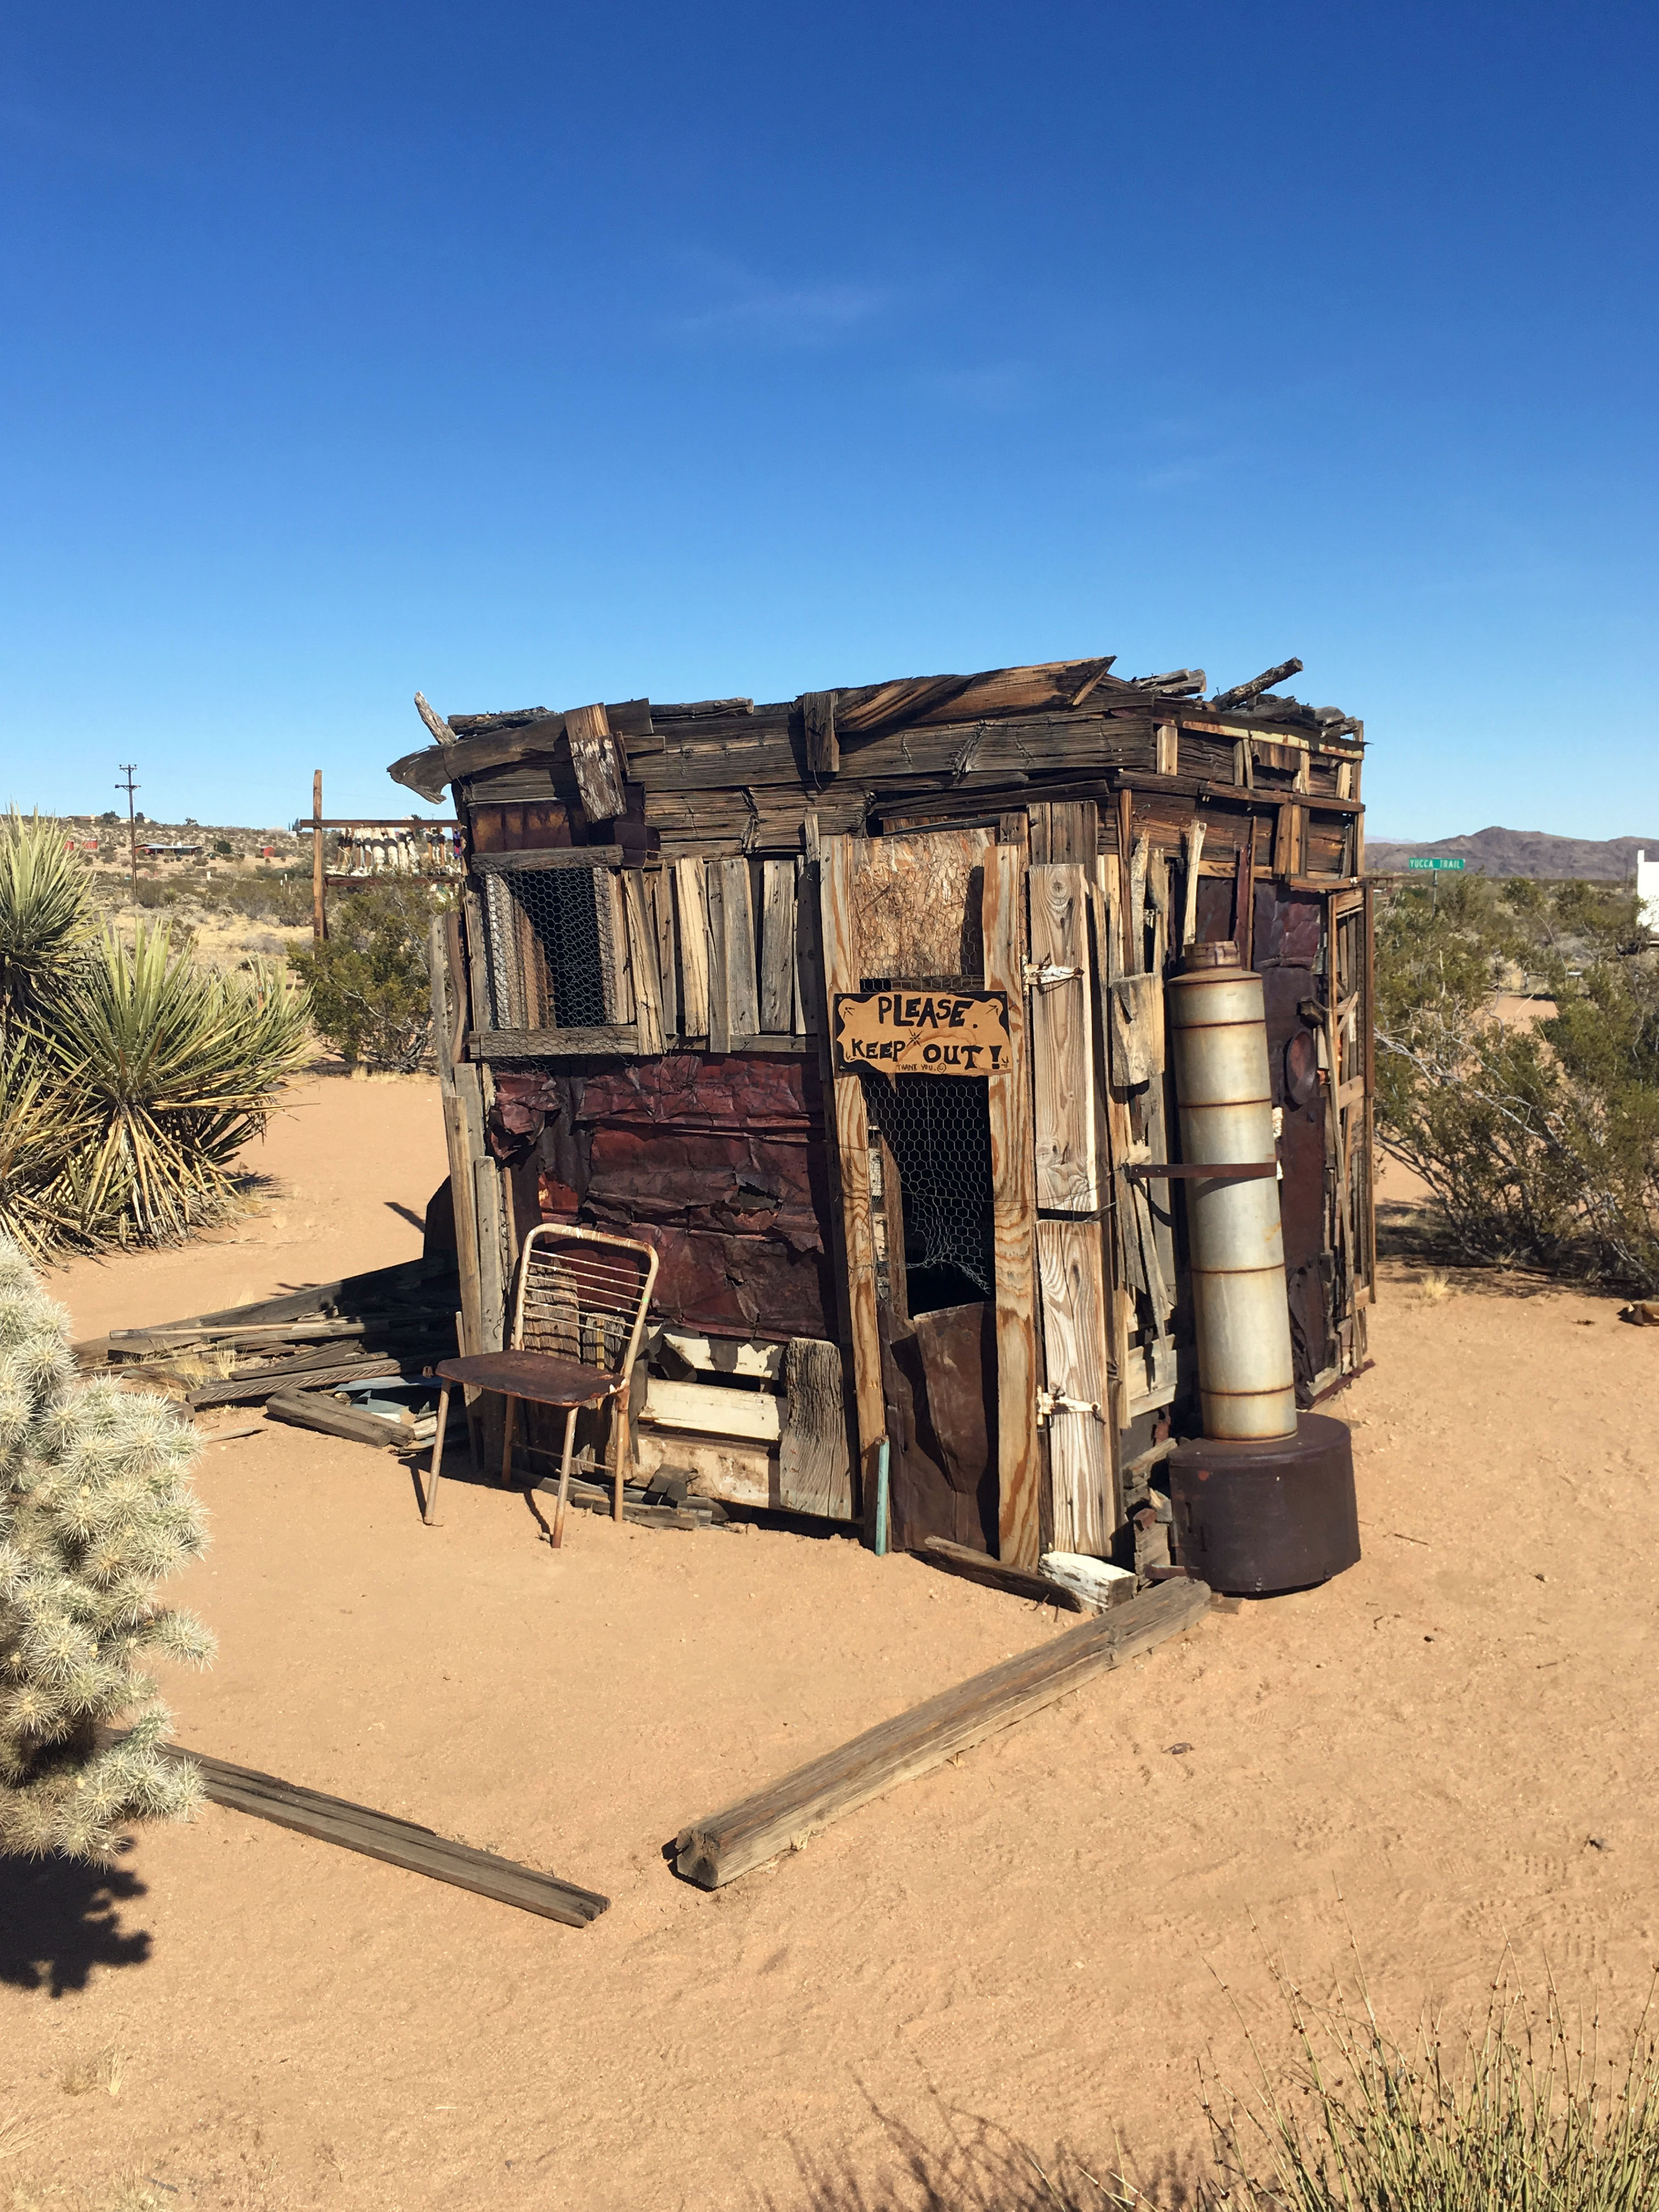 A Trip to the Desert: Joshua Tree Outdoor Museum – Vagabond Blondes